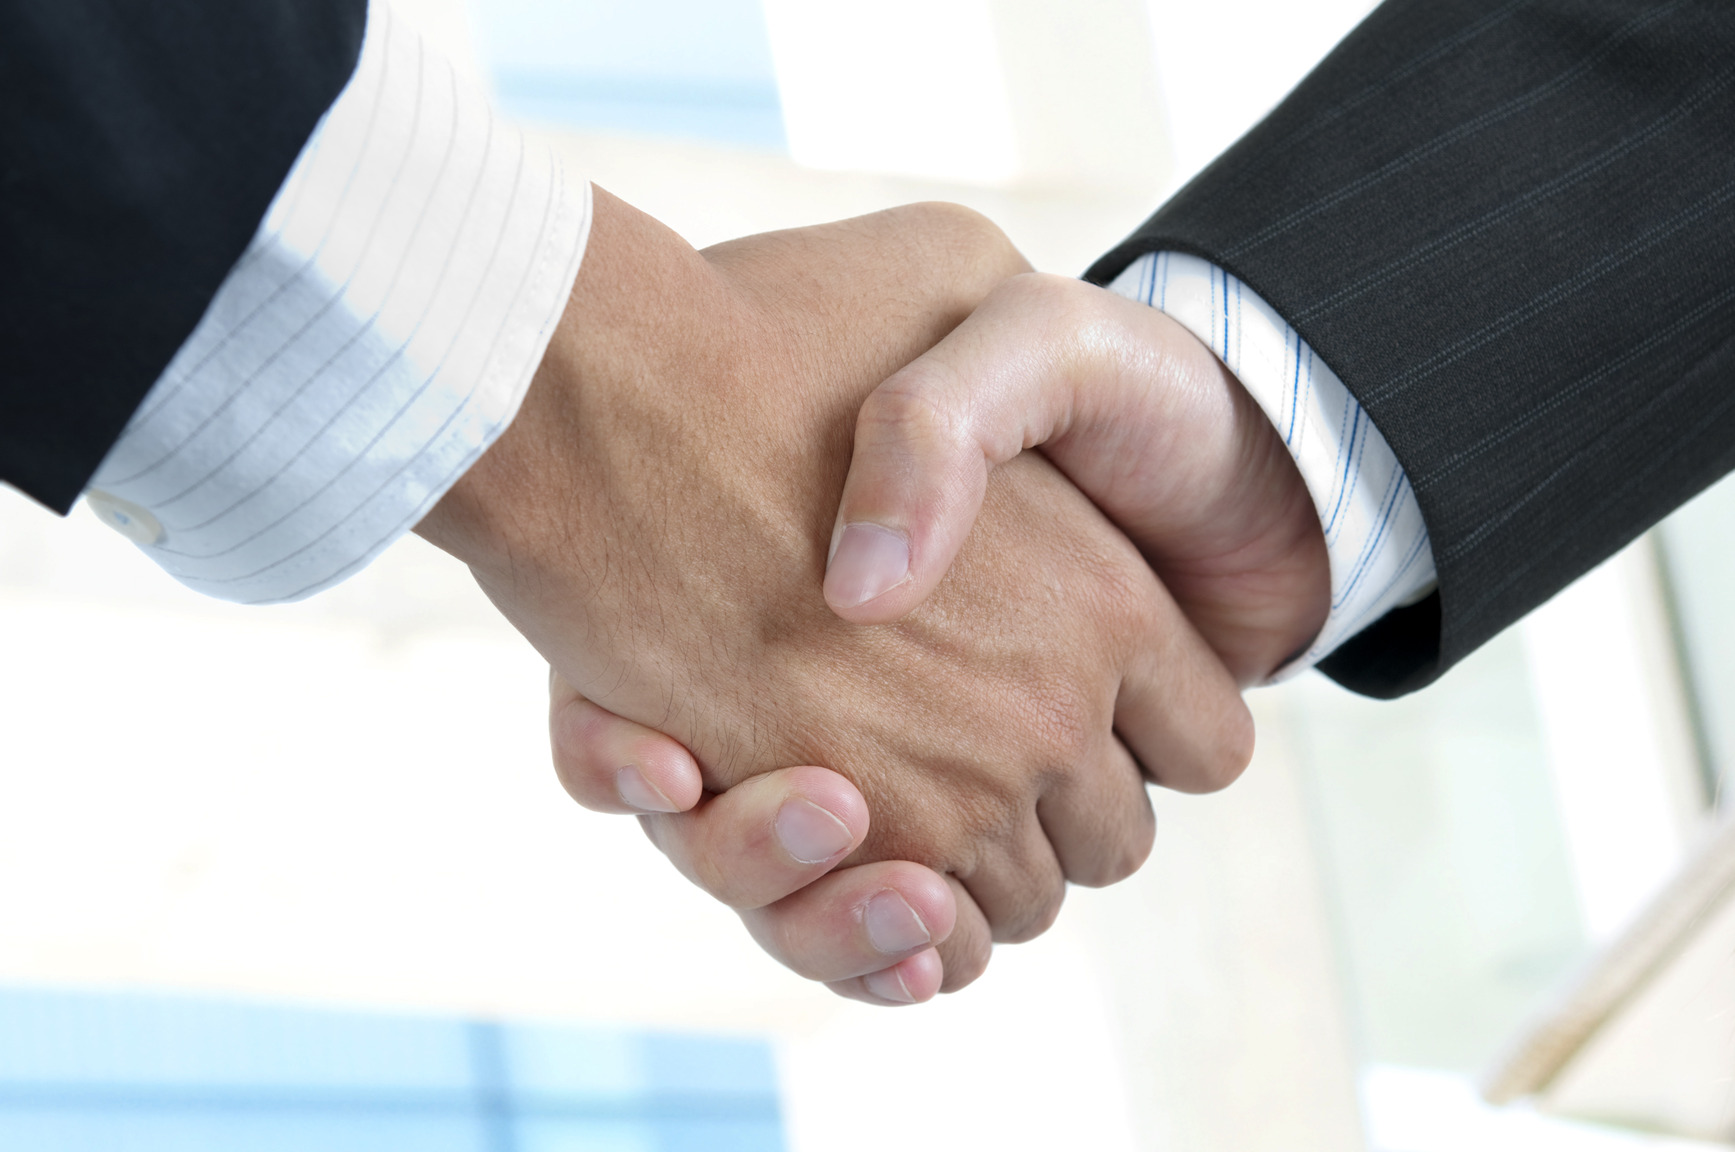 Asian businessman handshake with modern skyscrapers as background